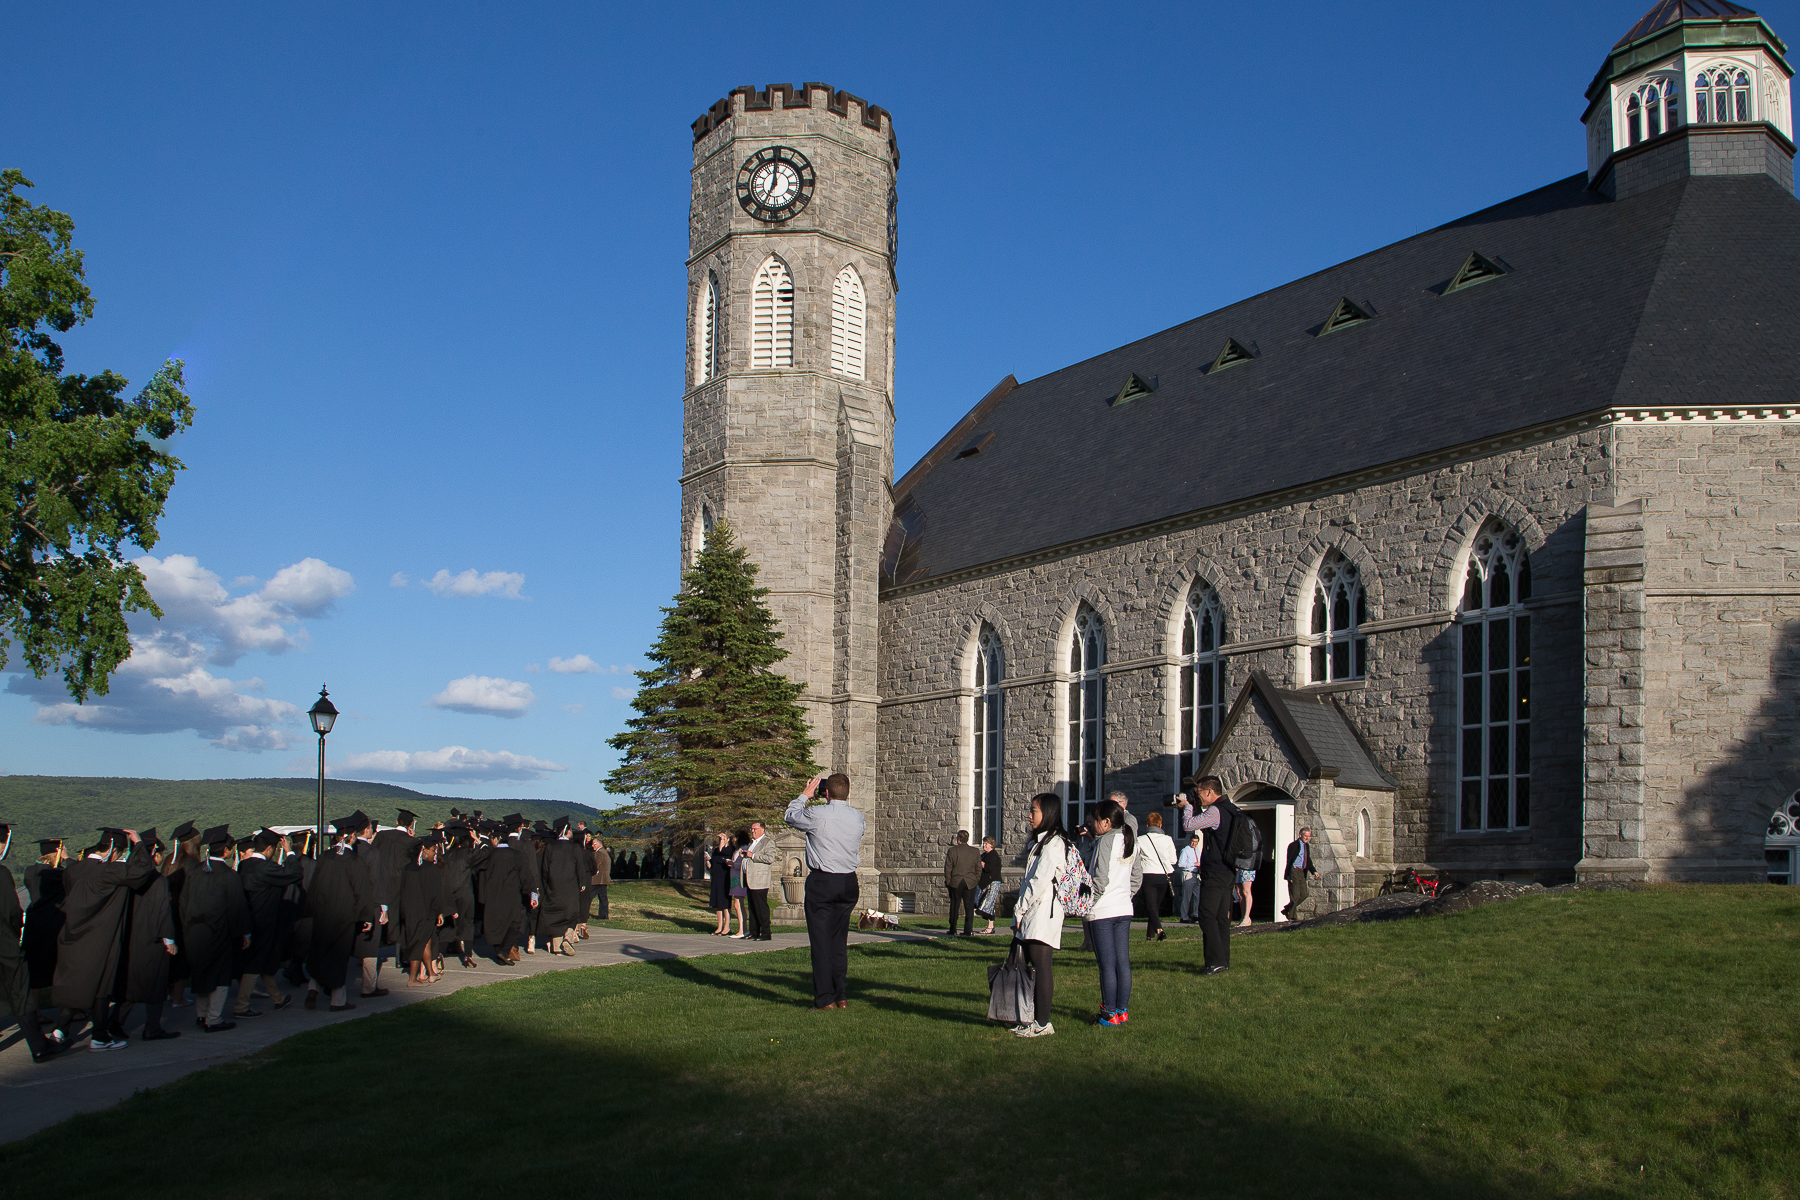 Baccalaureate Service at Northfield Mount Hermon, May 22, 2015. Photographs by Glenn Minshall.